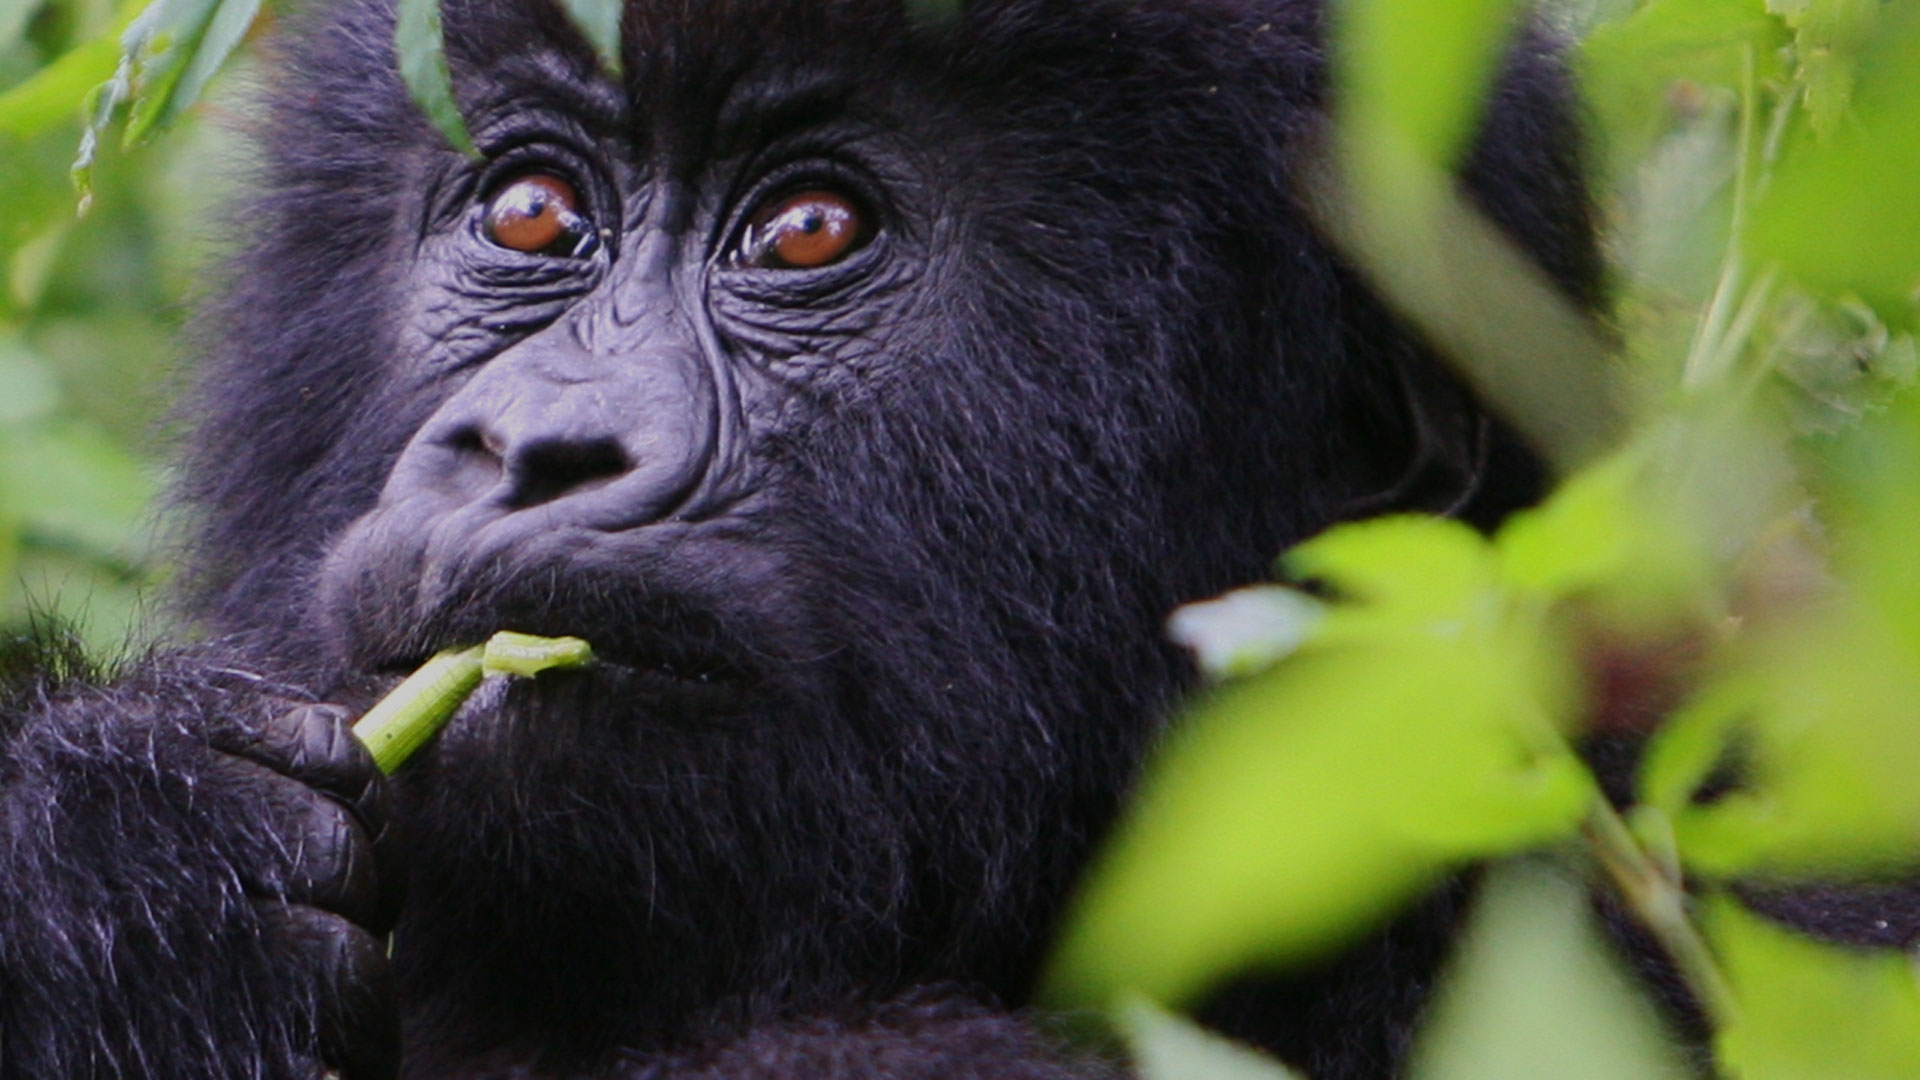 Meet The Mountain Gorillas of Bwindi Impenetrable Forest - VR Gorilla